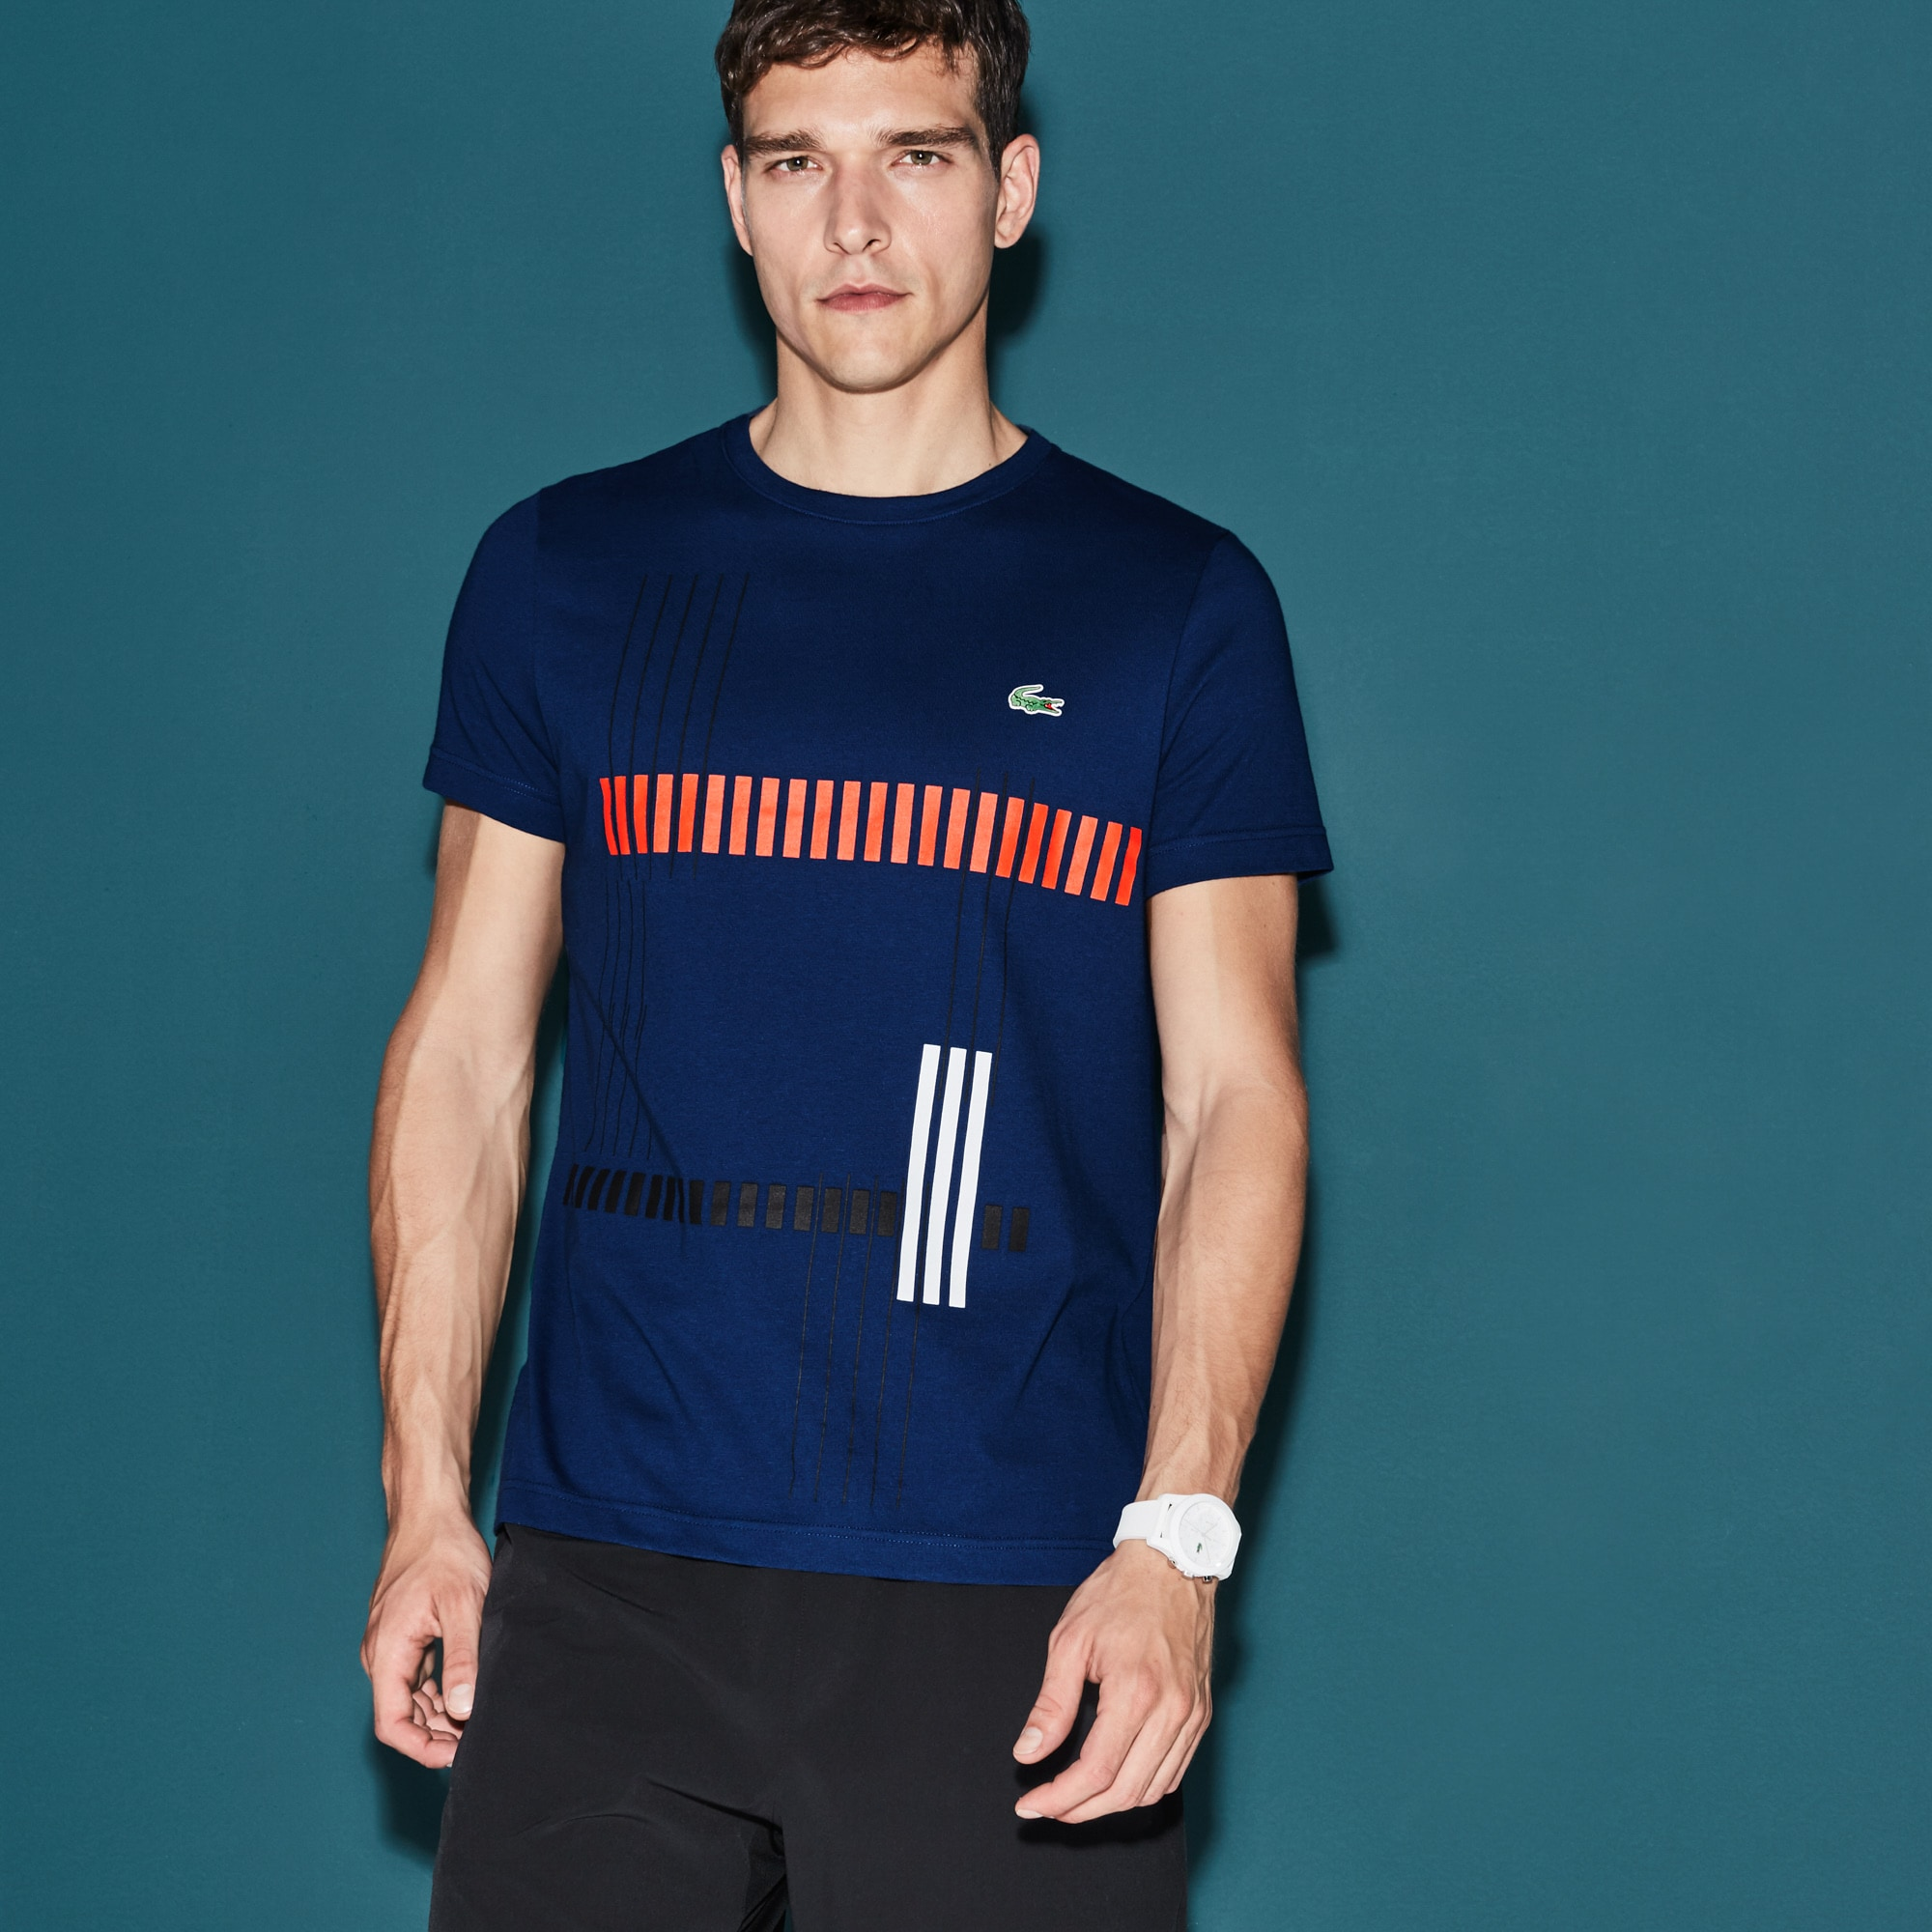 Discover the entire LACOSTE LIVE Collection on the Lacoste Online Store. Shop LACOSTE LIVE for Men and Women.